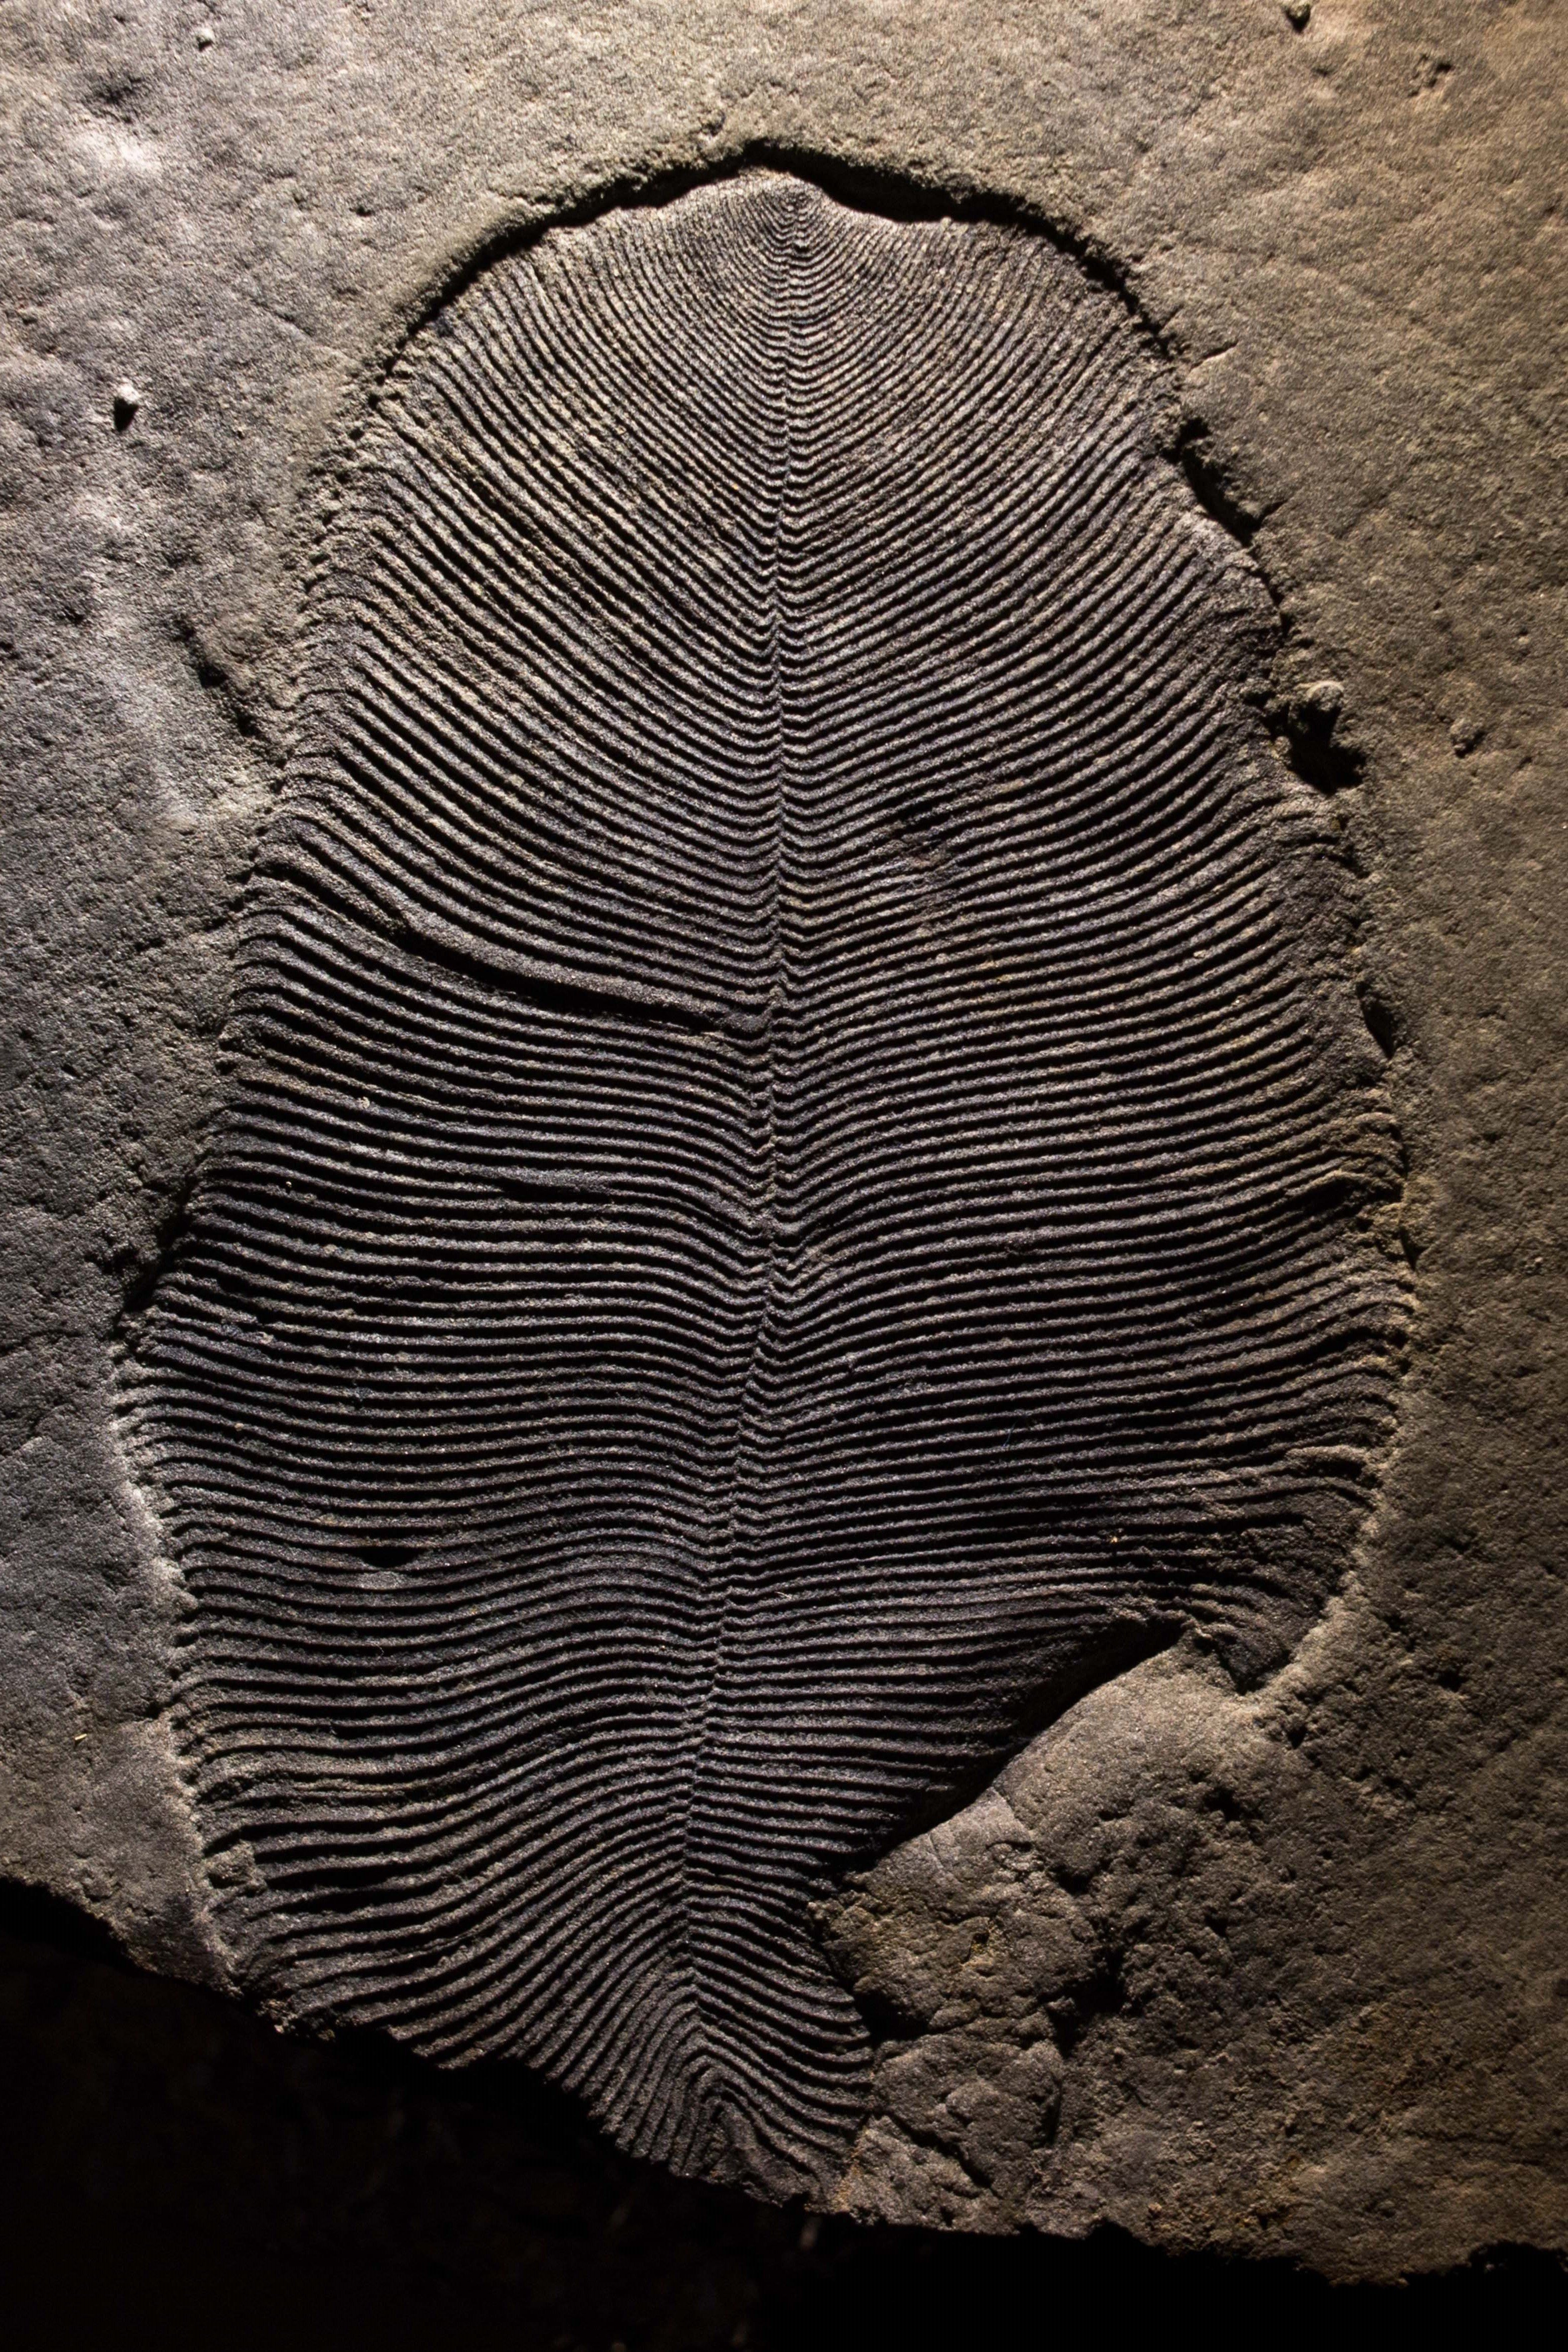 A well-preserved Dickinsonia fossil from the White Sea area of Russia.